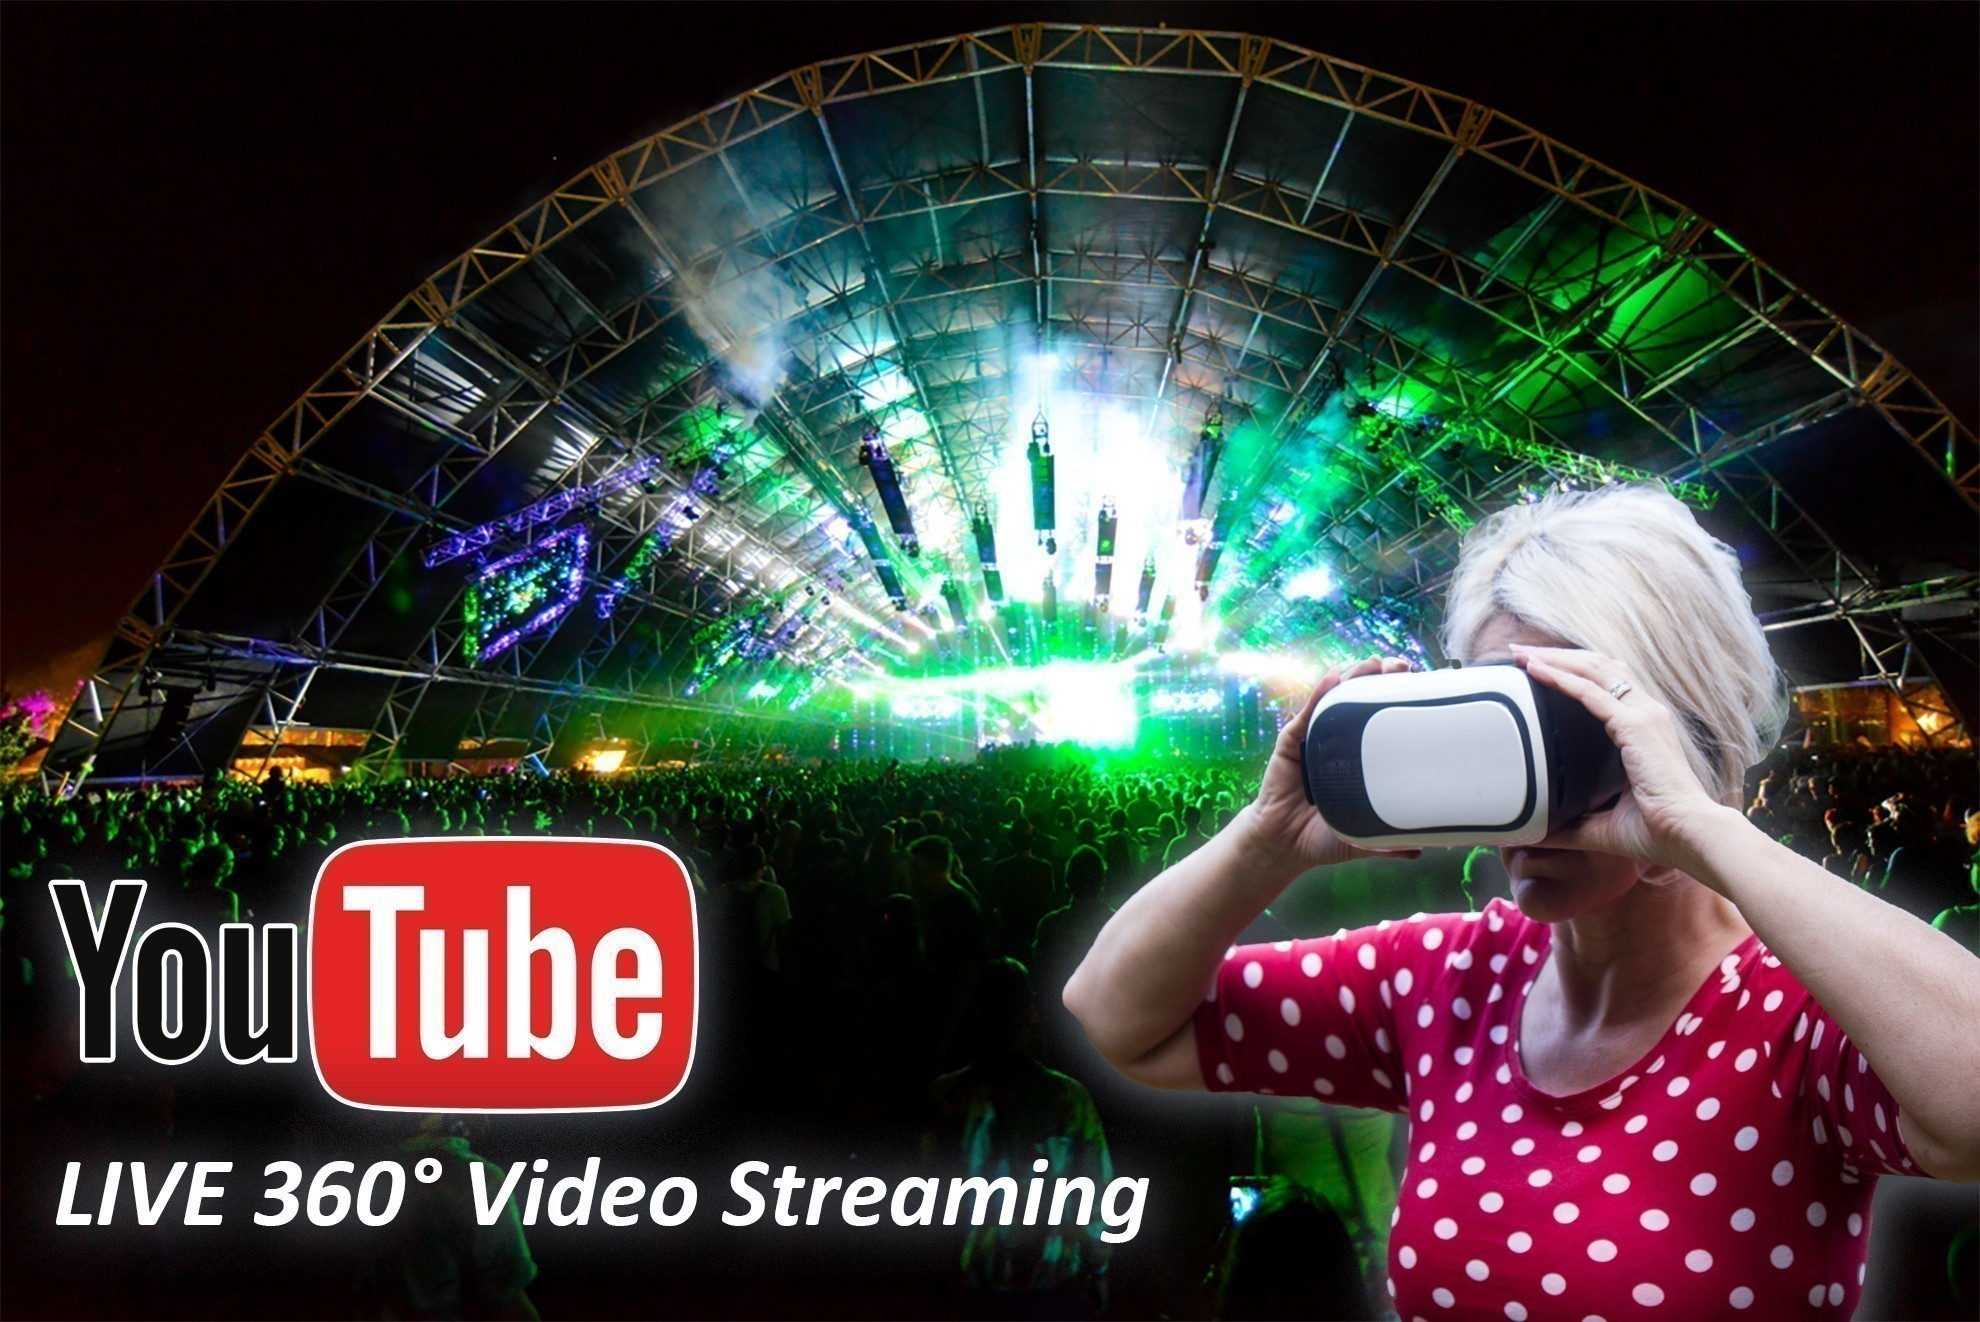 youtube-live-360-video